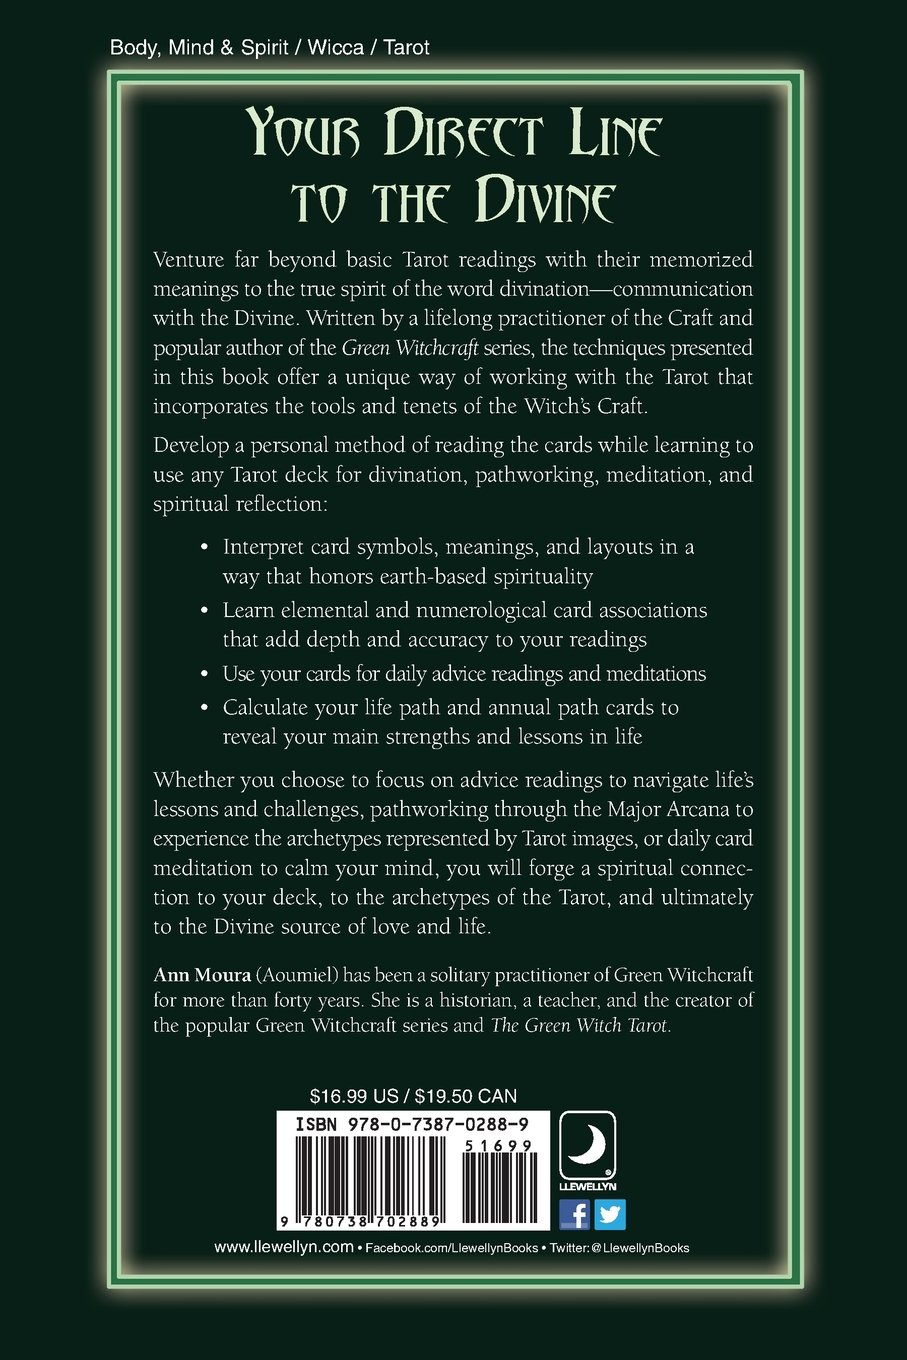 Tarot for the green witch ann moura 9780738702889 amazon books biocorpaavc Choice Image